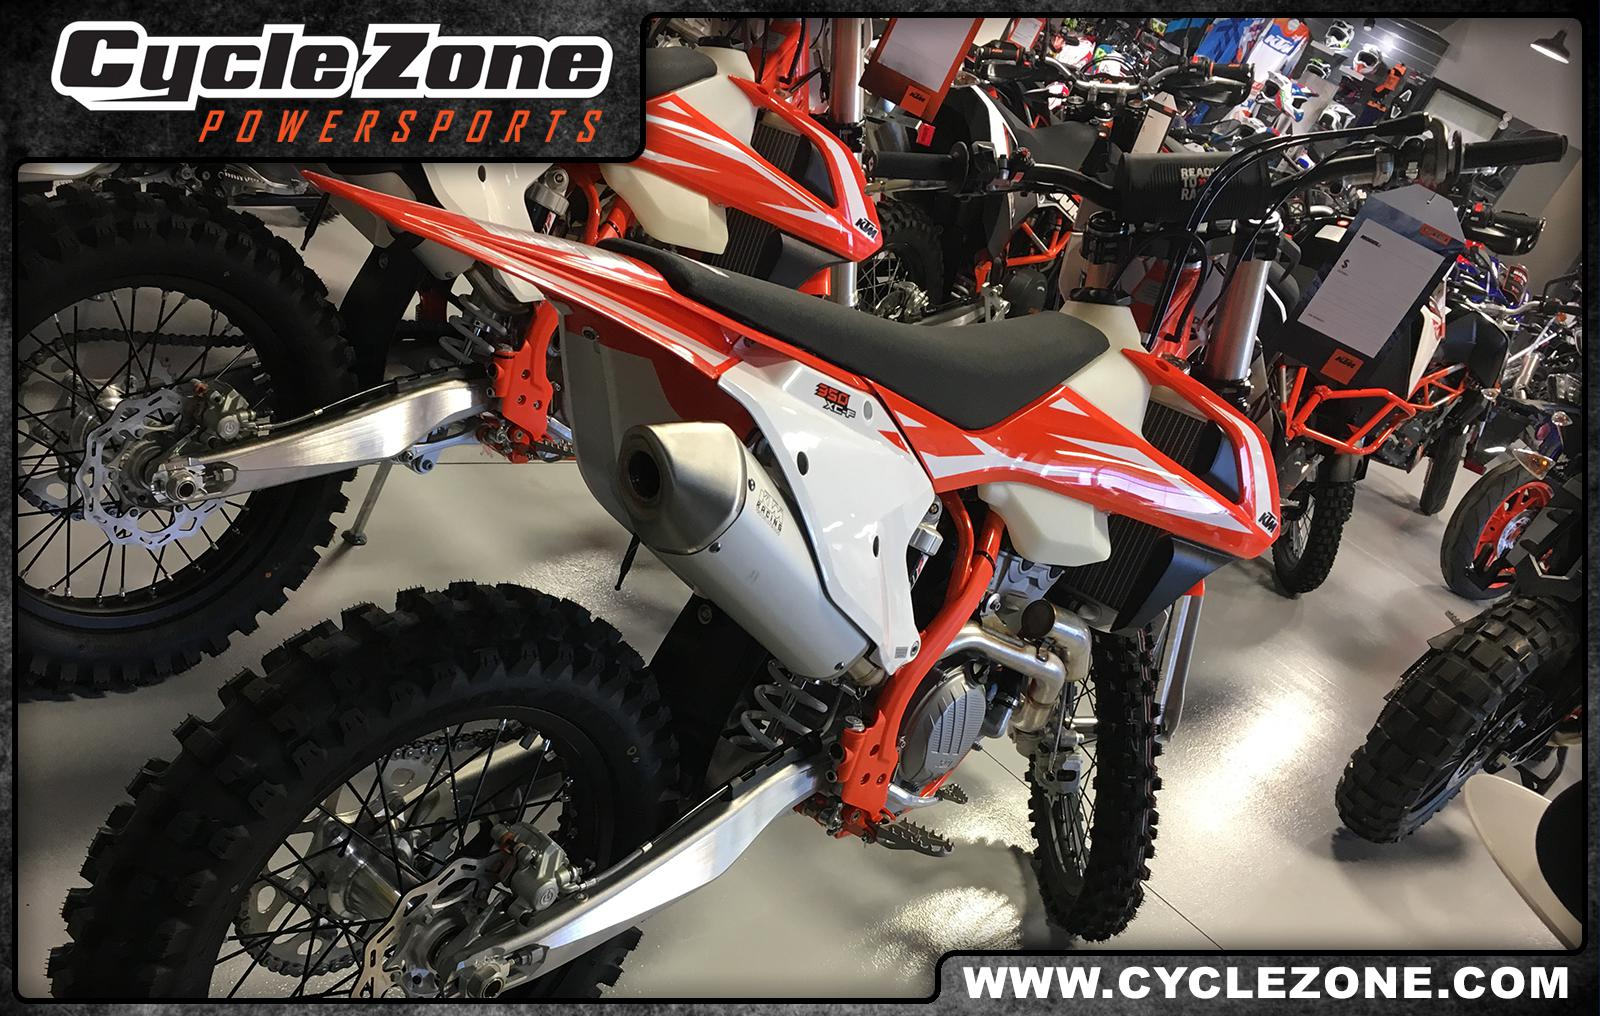 2018 ktm xcf 350. contemporary 2018 cyclezonepowersports_topeka_2018ktm350xcf_m207595_ to 2018 ktm xcf 350 t